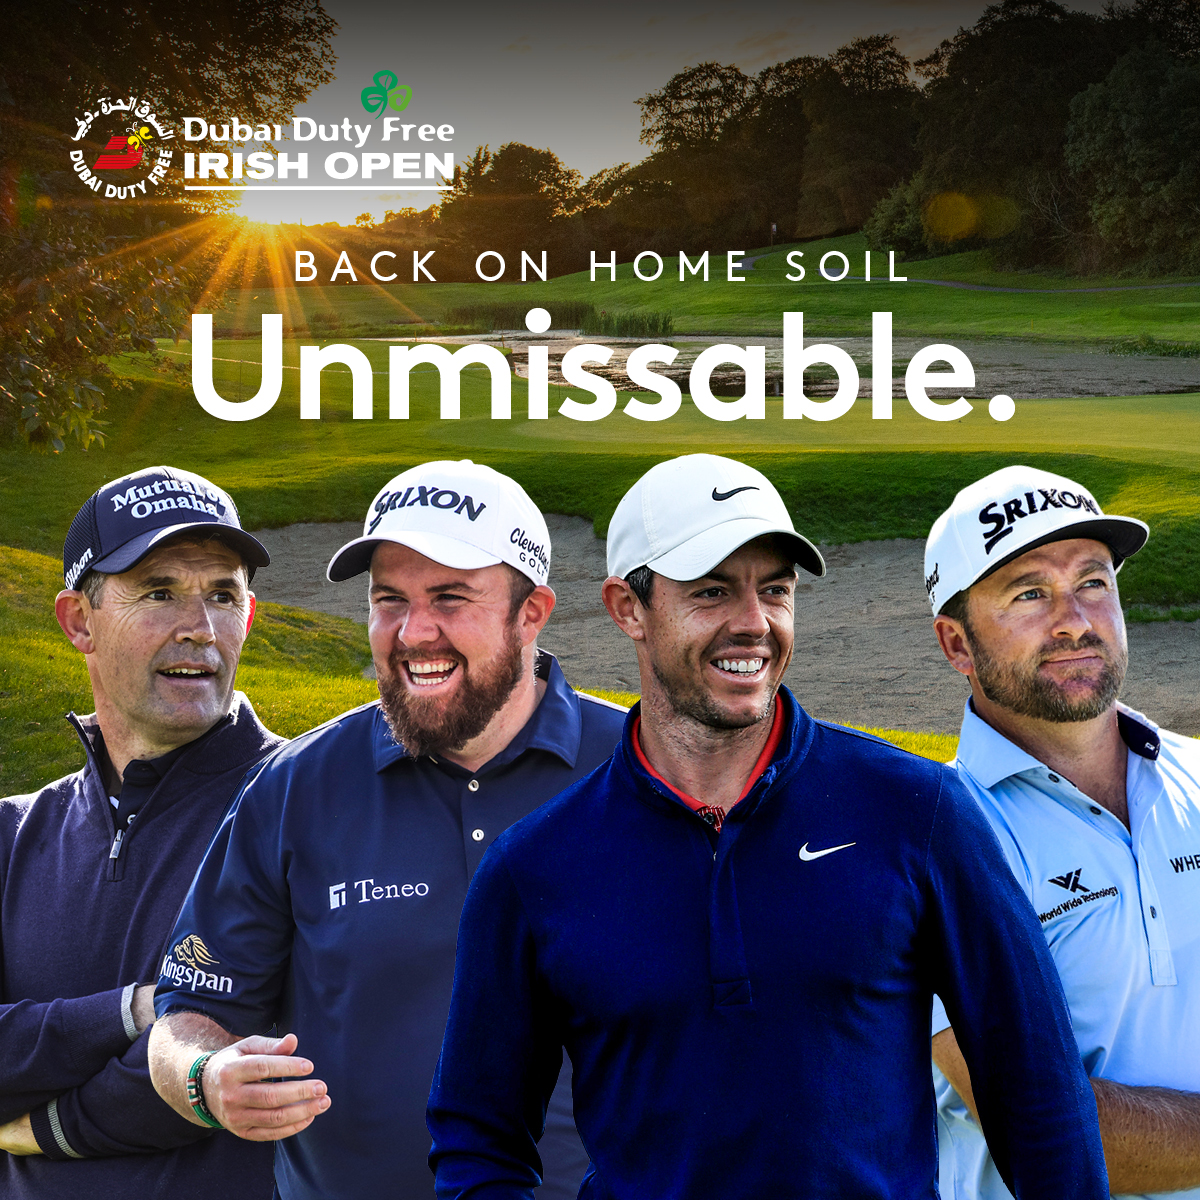 Ready for a homecoming!👀☘️  @McIlroyRory @ShaneLowryGolf @padraig_h @Graeme_McDowell   🎟Tickets go on sale June 10th and you can register your interest now!👉https://t.co/t8i58KczdK  #DDFIO https://t.co/dgcBDIFbgd